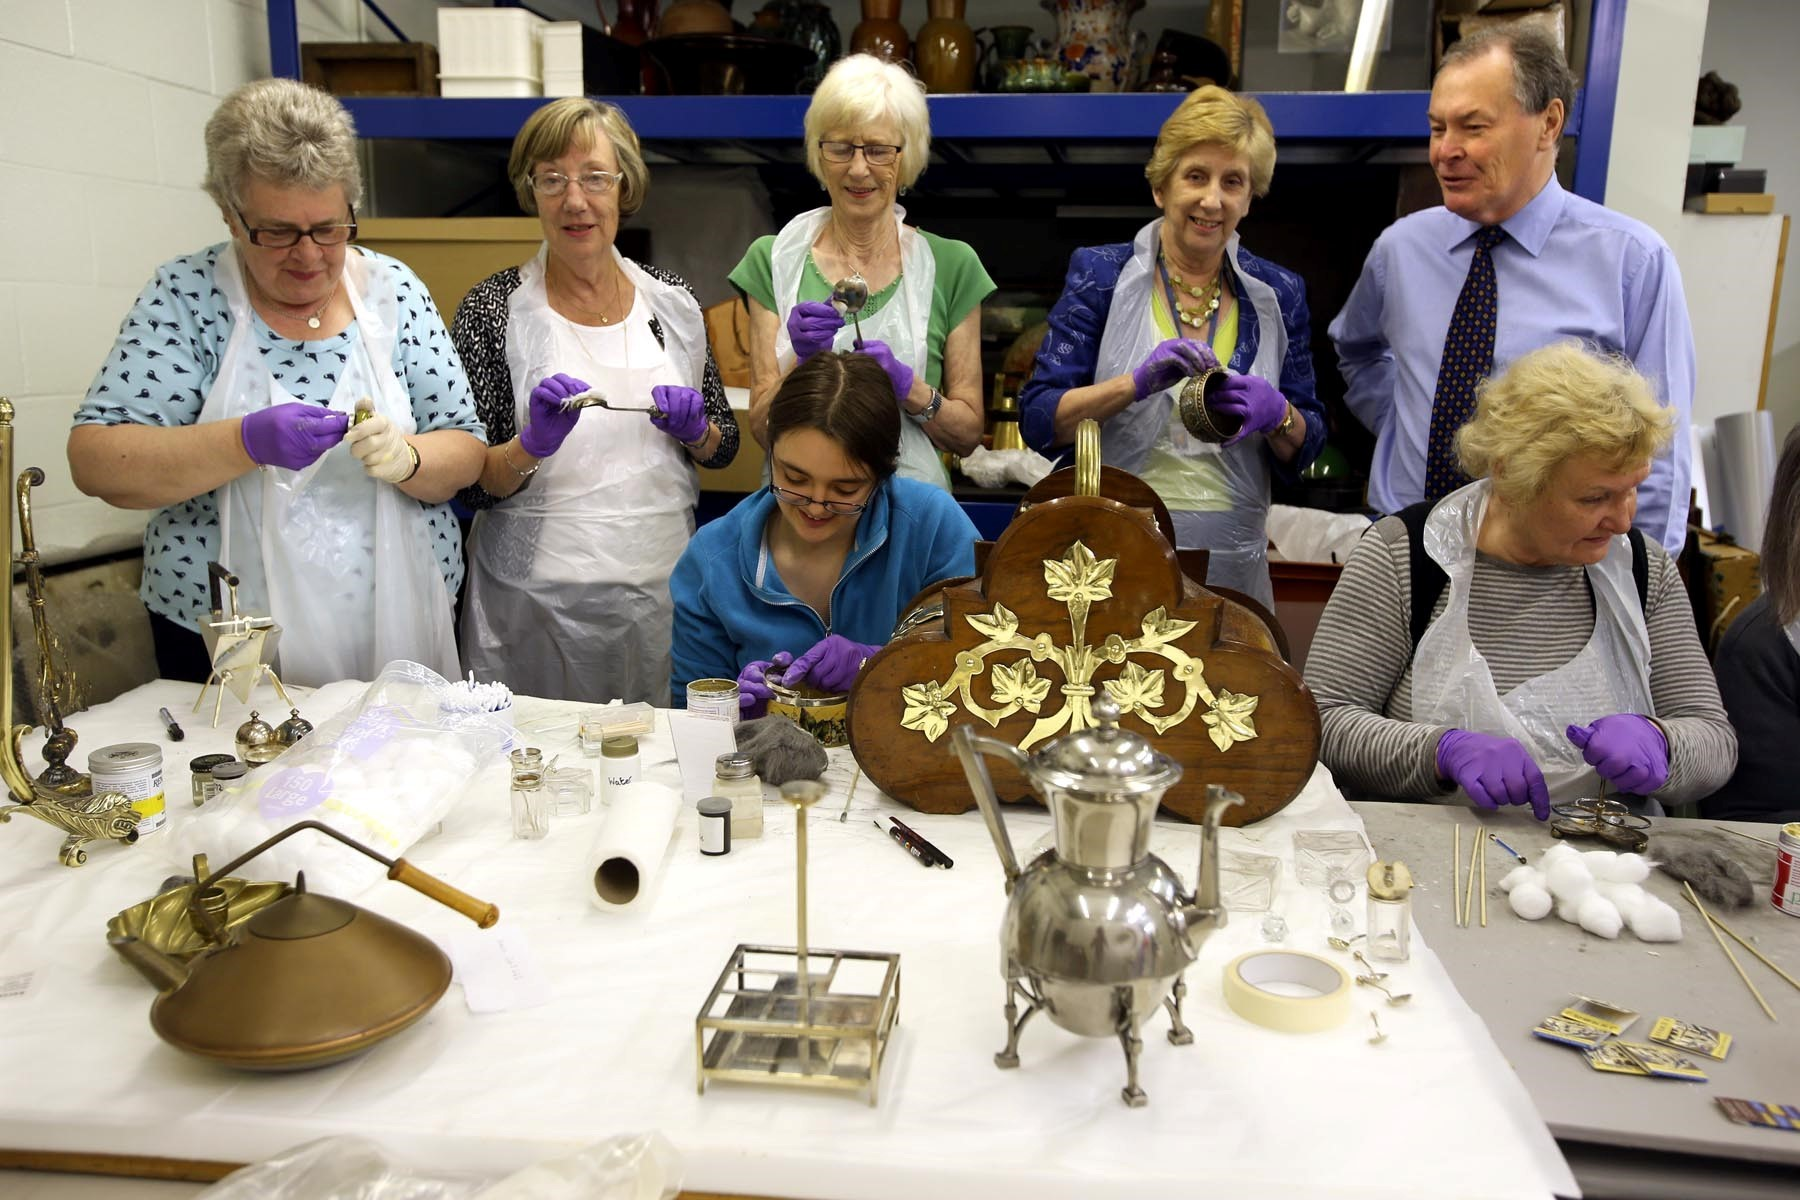 SUMMER CLEAN: Members of the Linthorpe W.I. at the Dorman Museum on Linthorpe Road, Middlebrough give the antique Dresser pottery a clean.  Pictured are Pauline Coates, Mary Ellis, Margaret Stephenson, museum volu